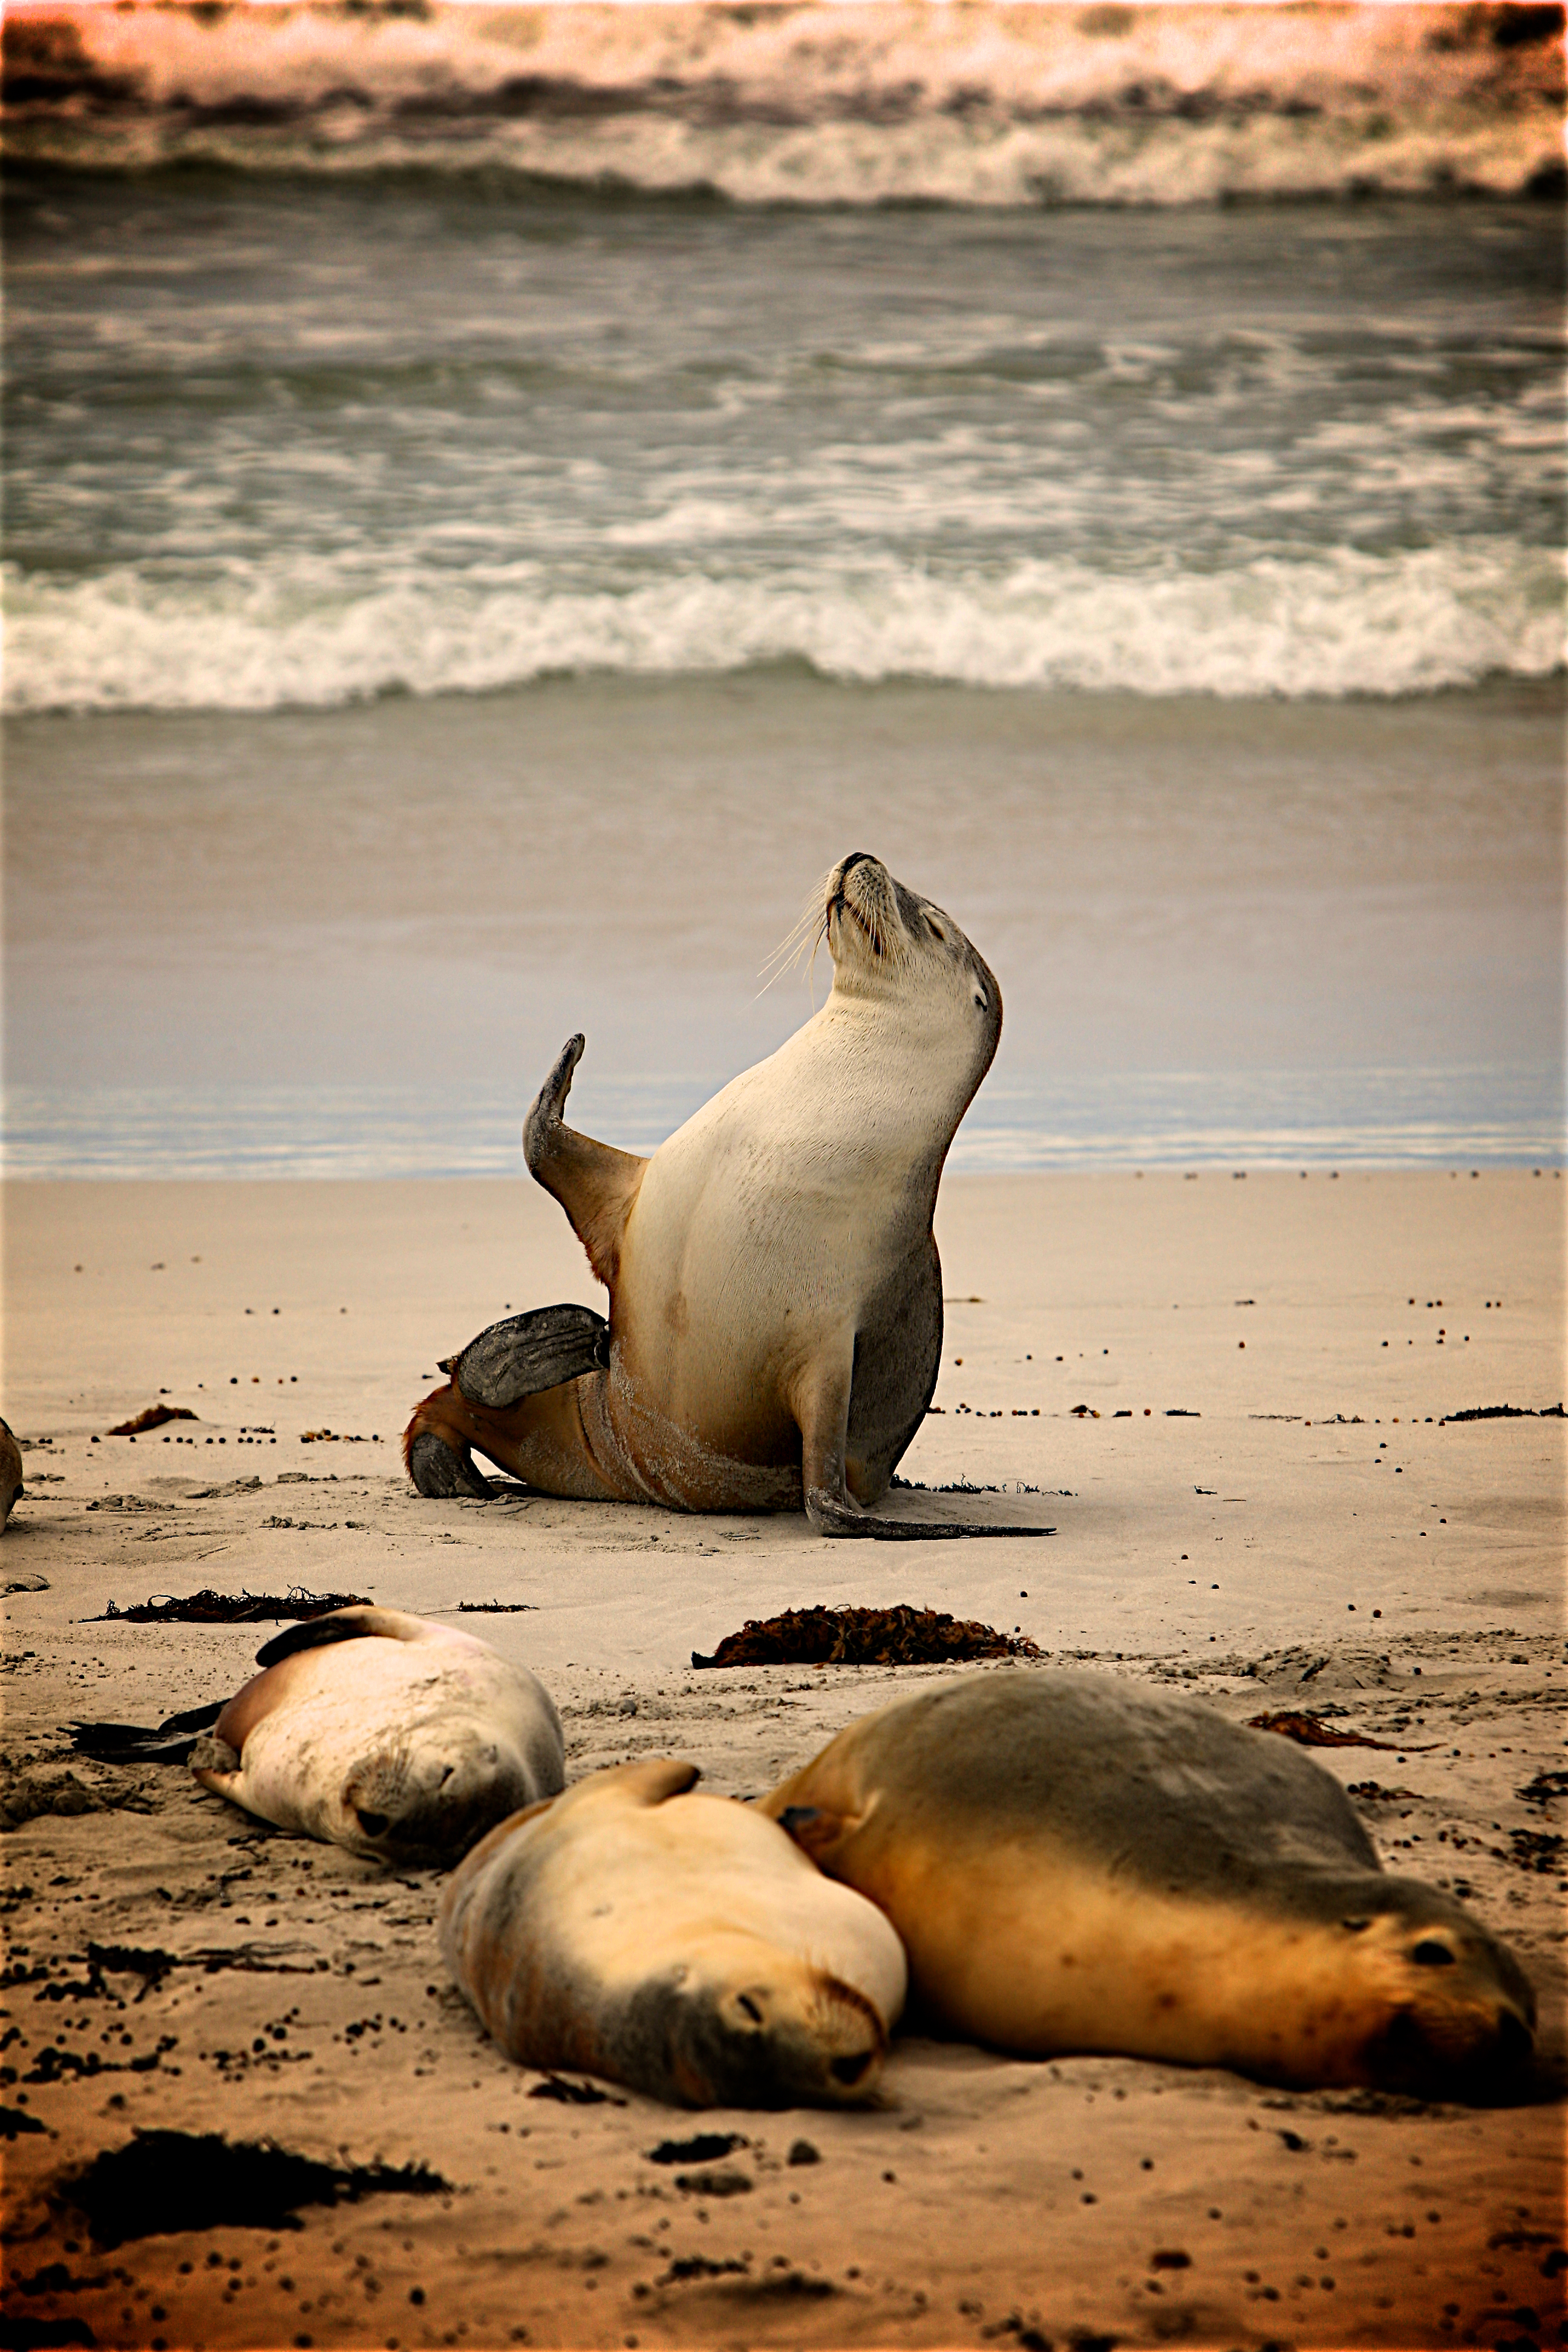 Cute Animal Wallpapers Free Download Close Up Of Sea Lion At Beach 183 Free Stock Photo